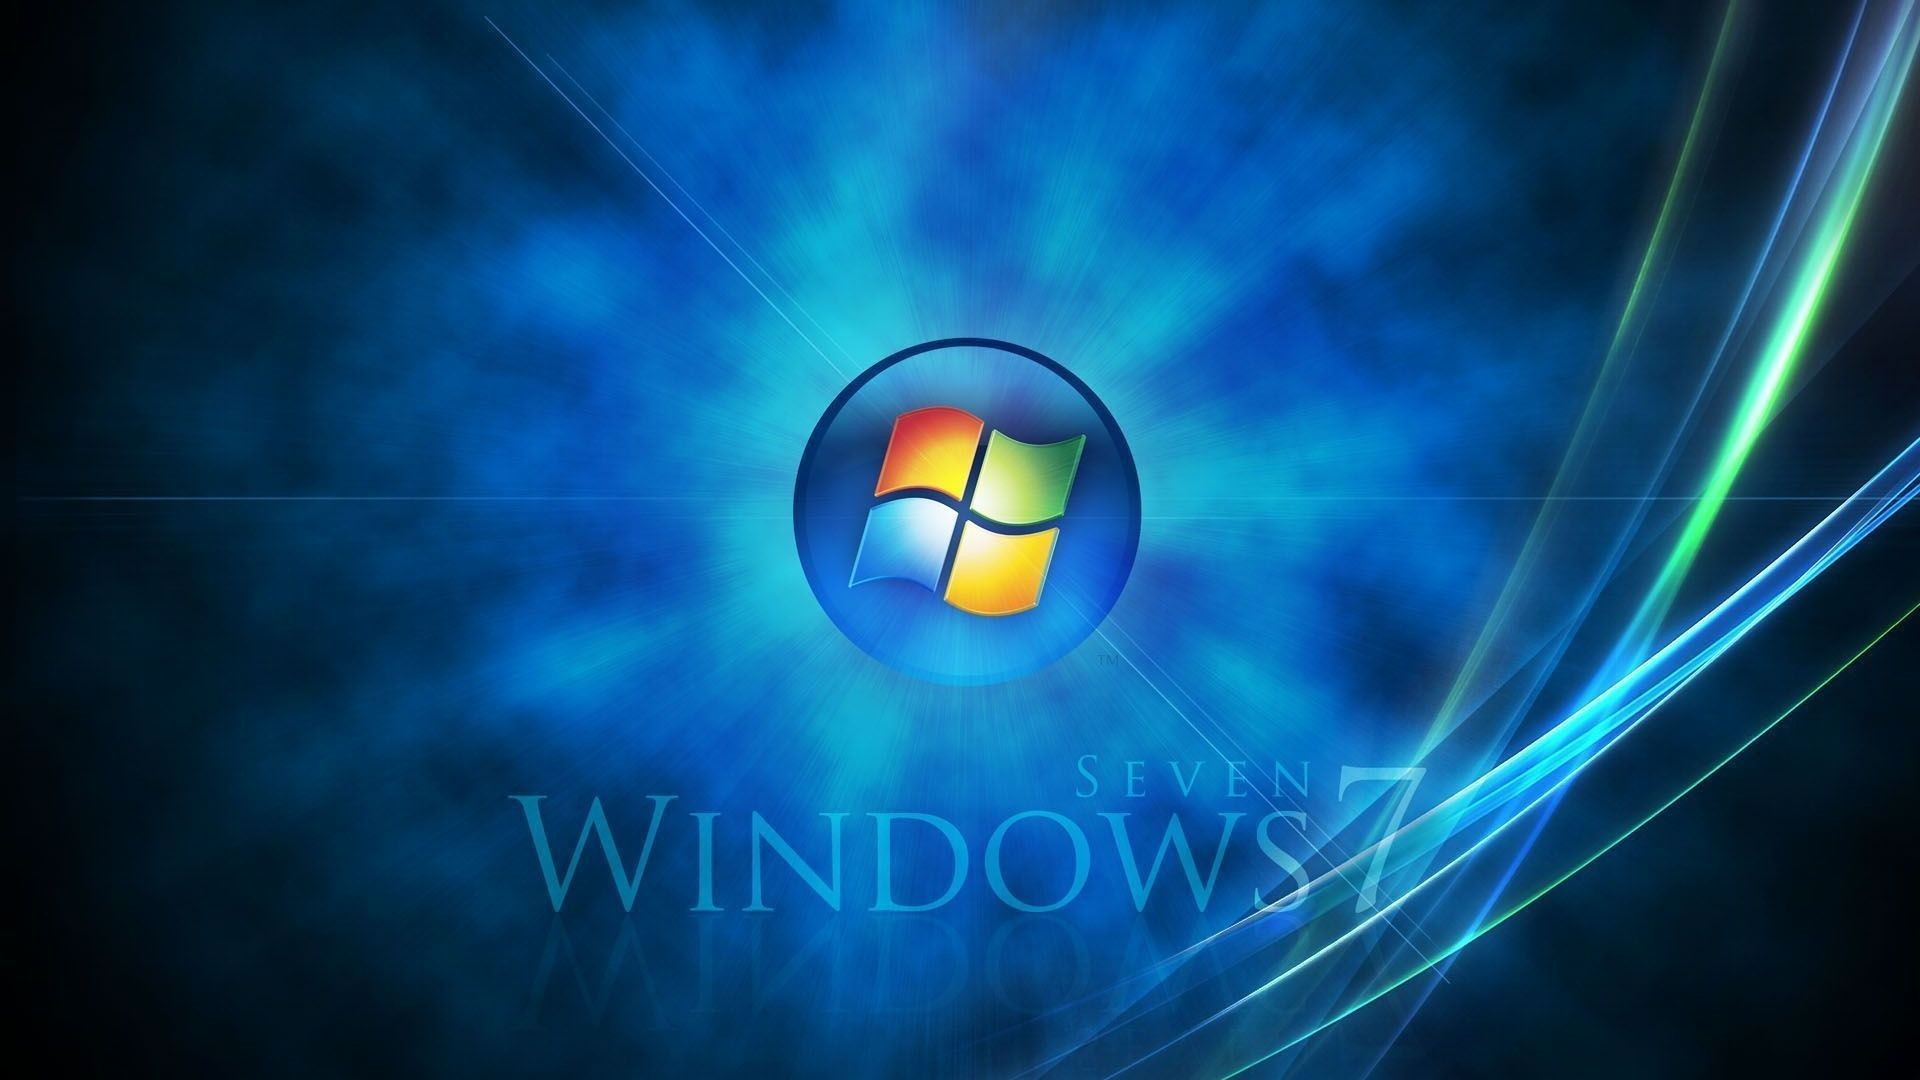 windows 7 hd wallpapers 1080p (73+ pictures)